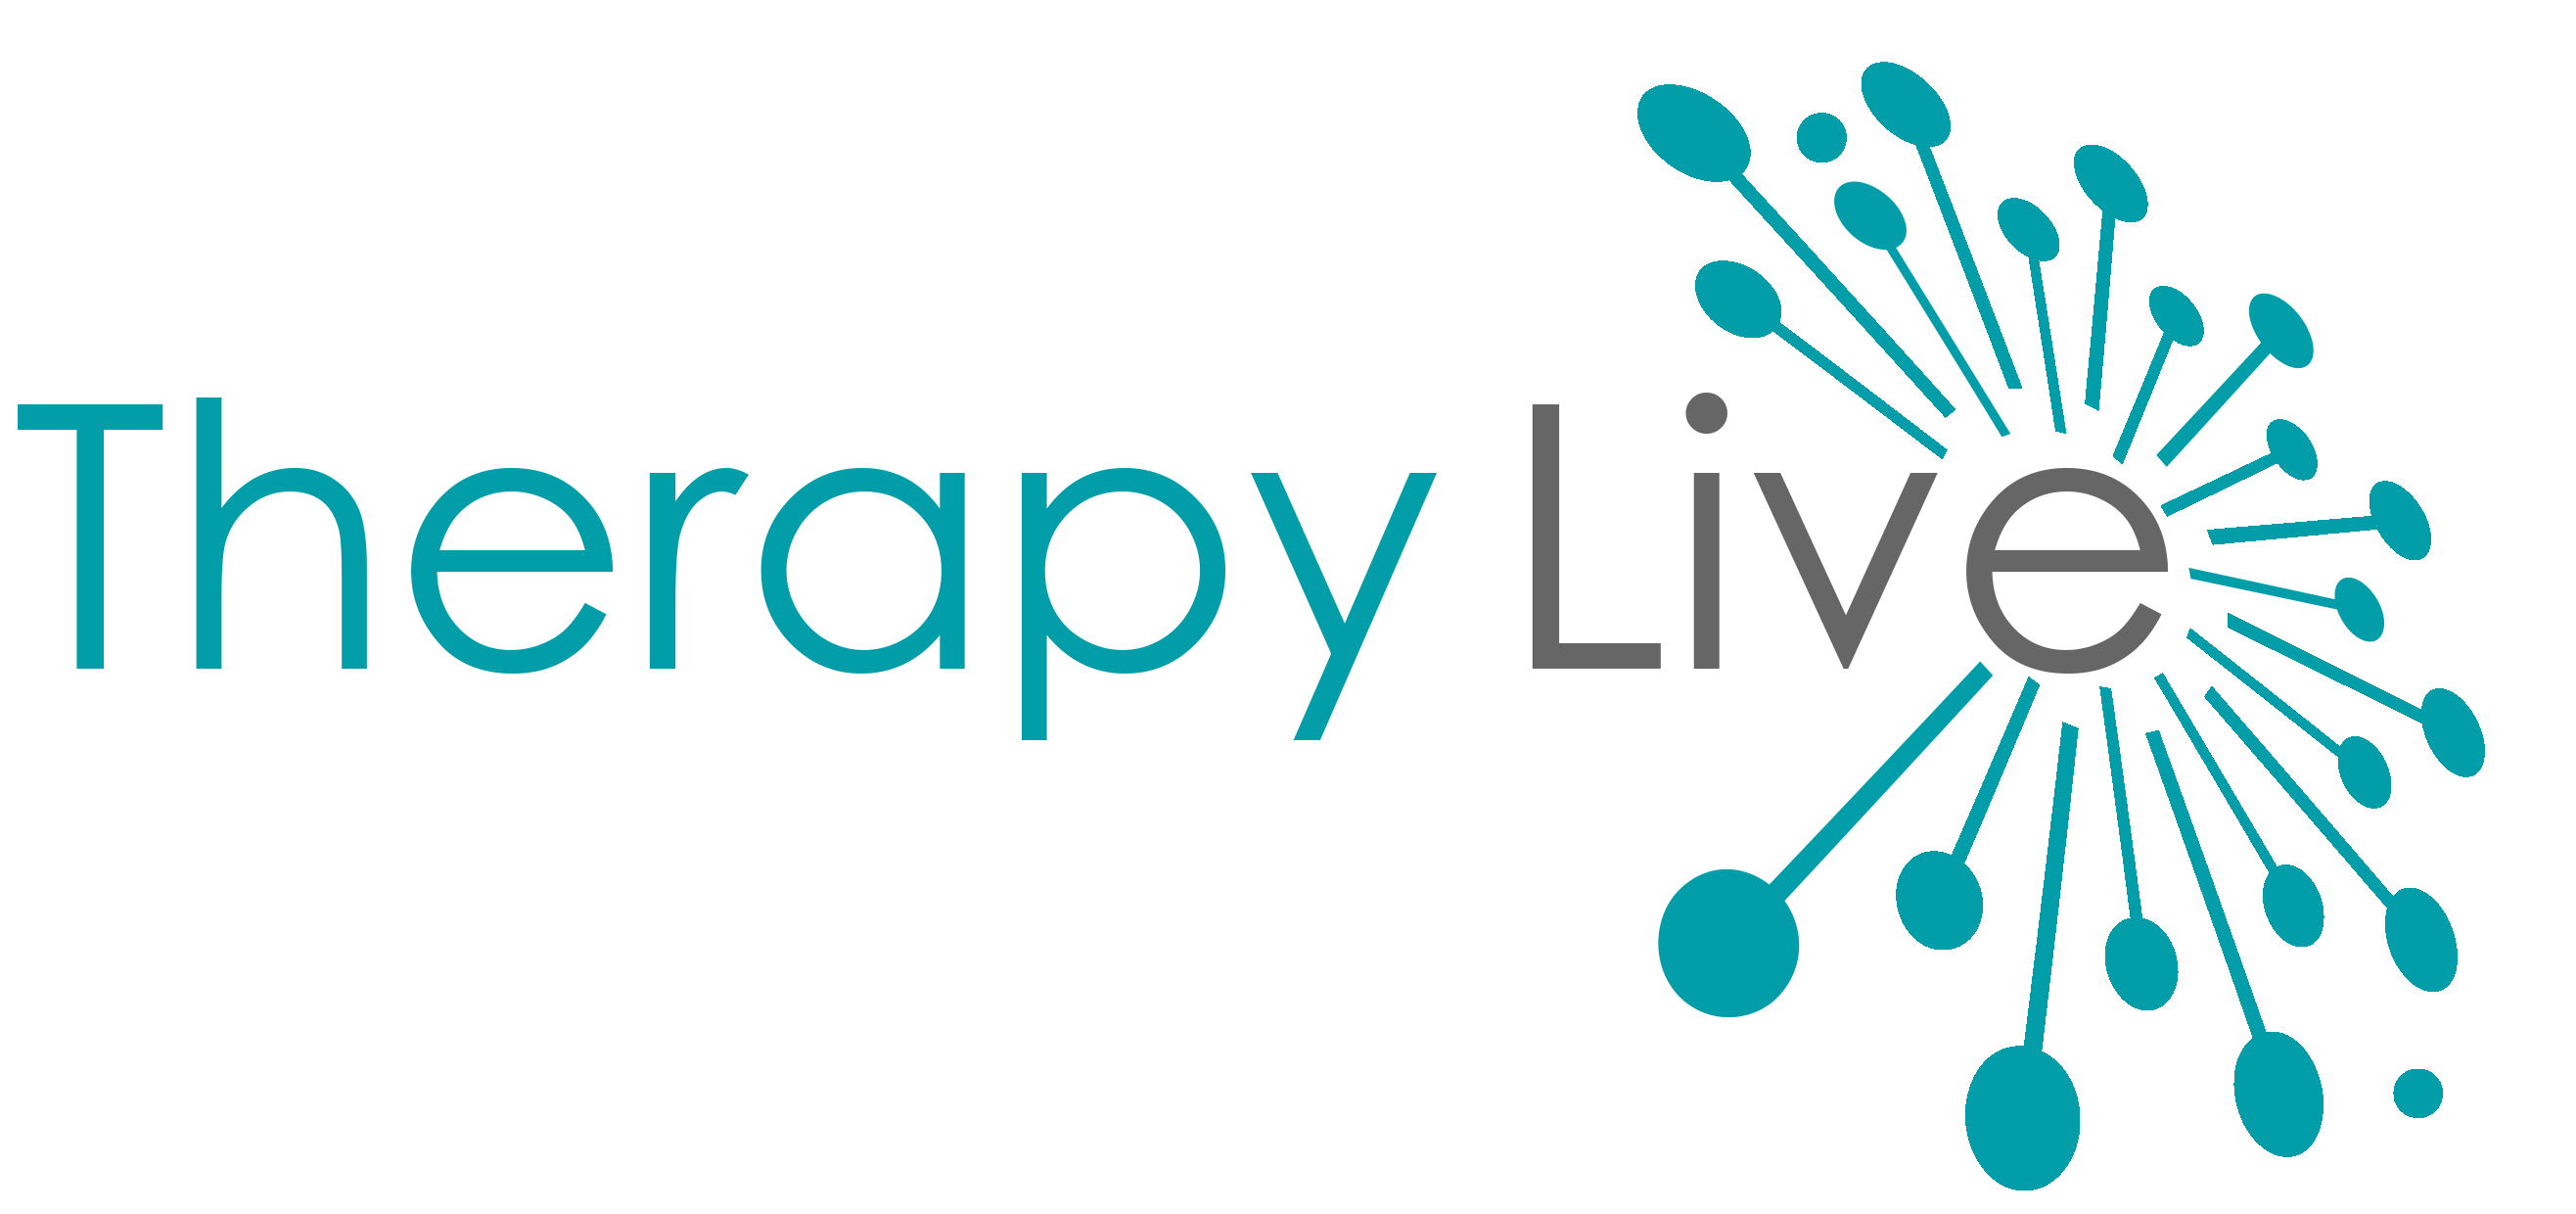 Therapy Live Help Desk